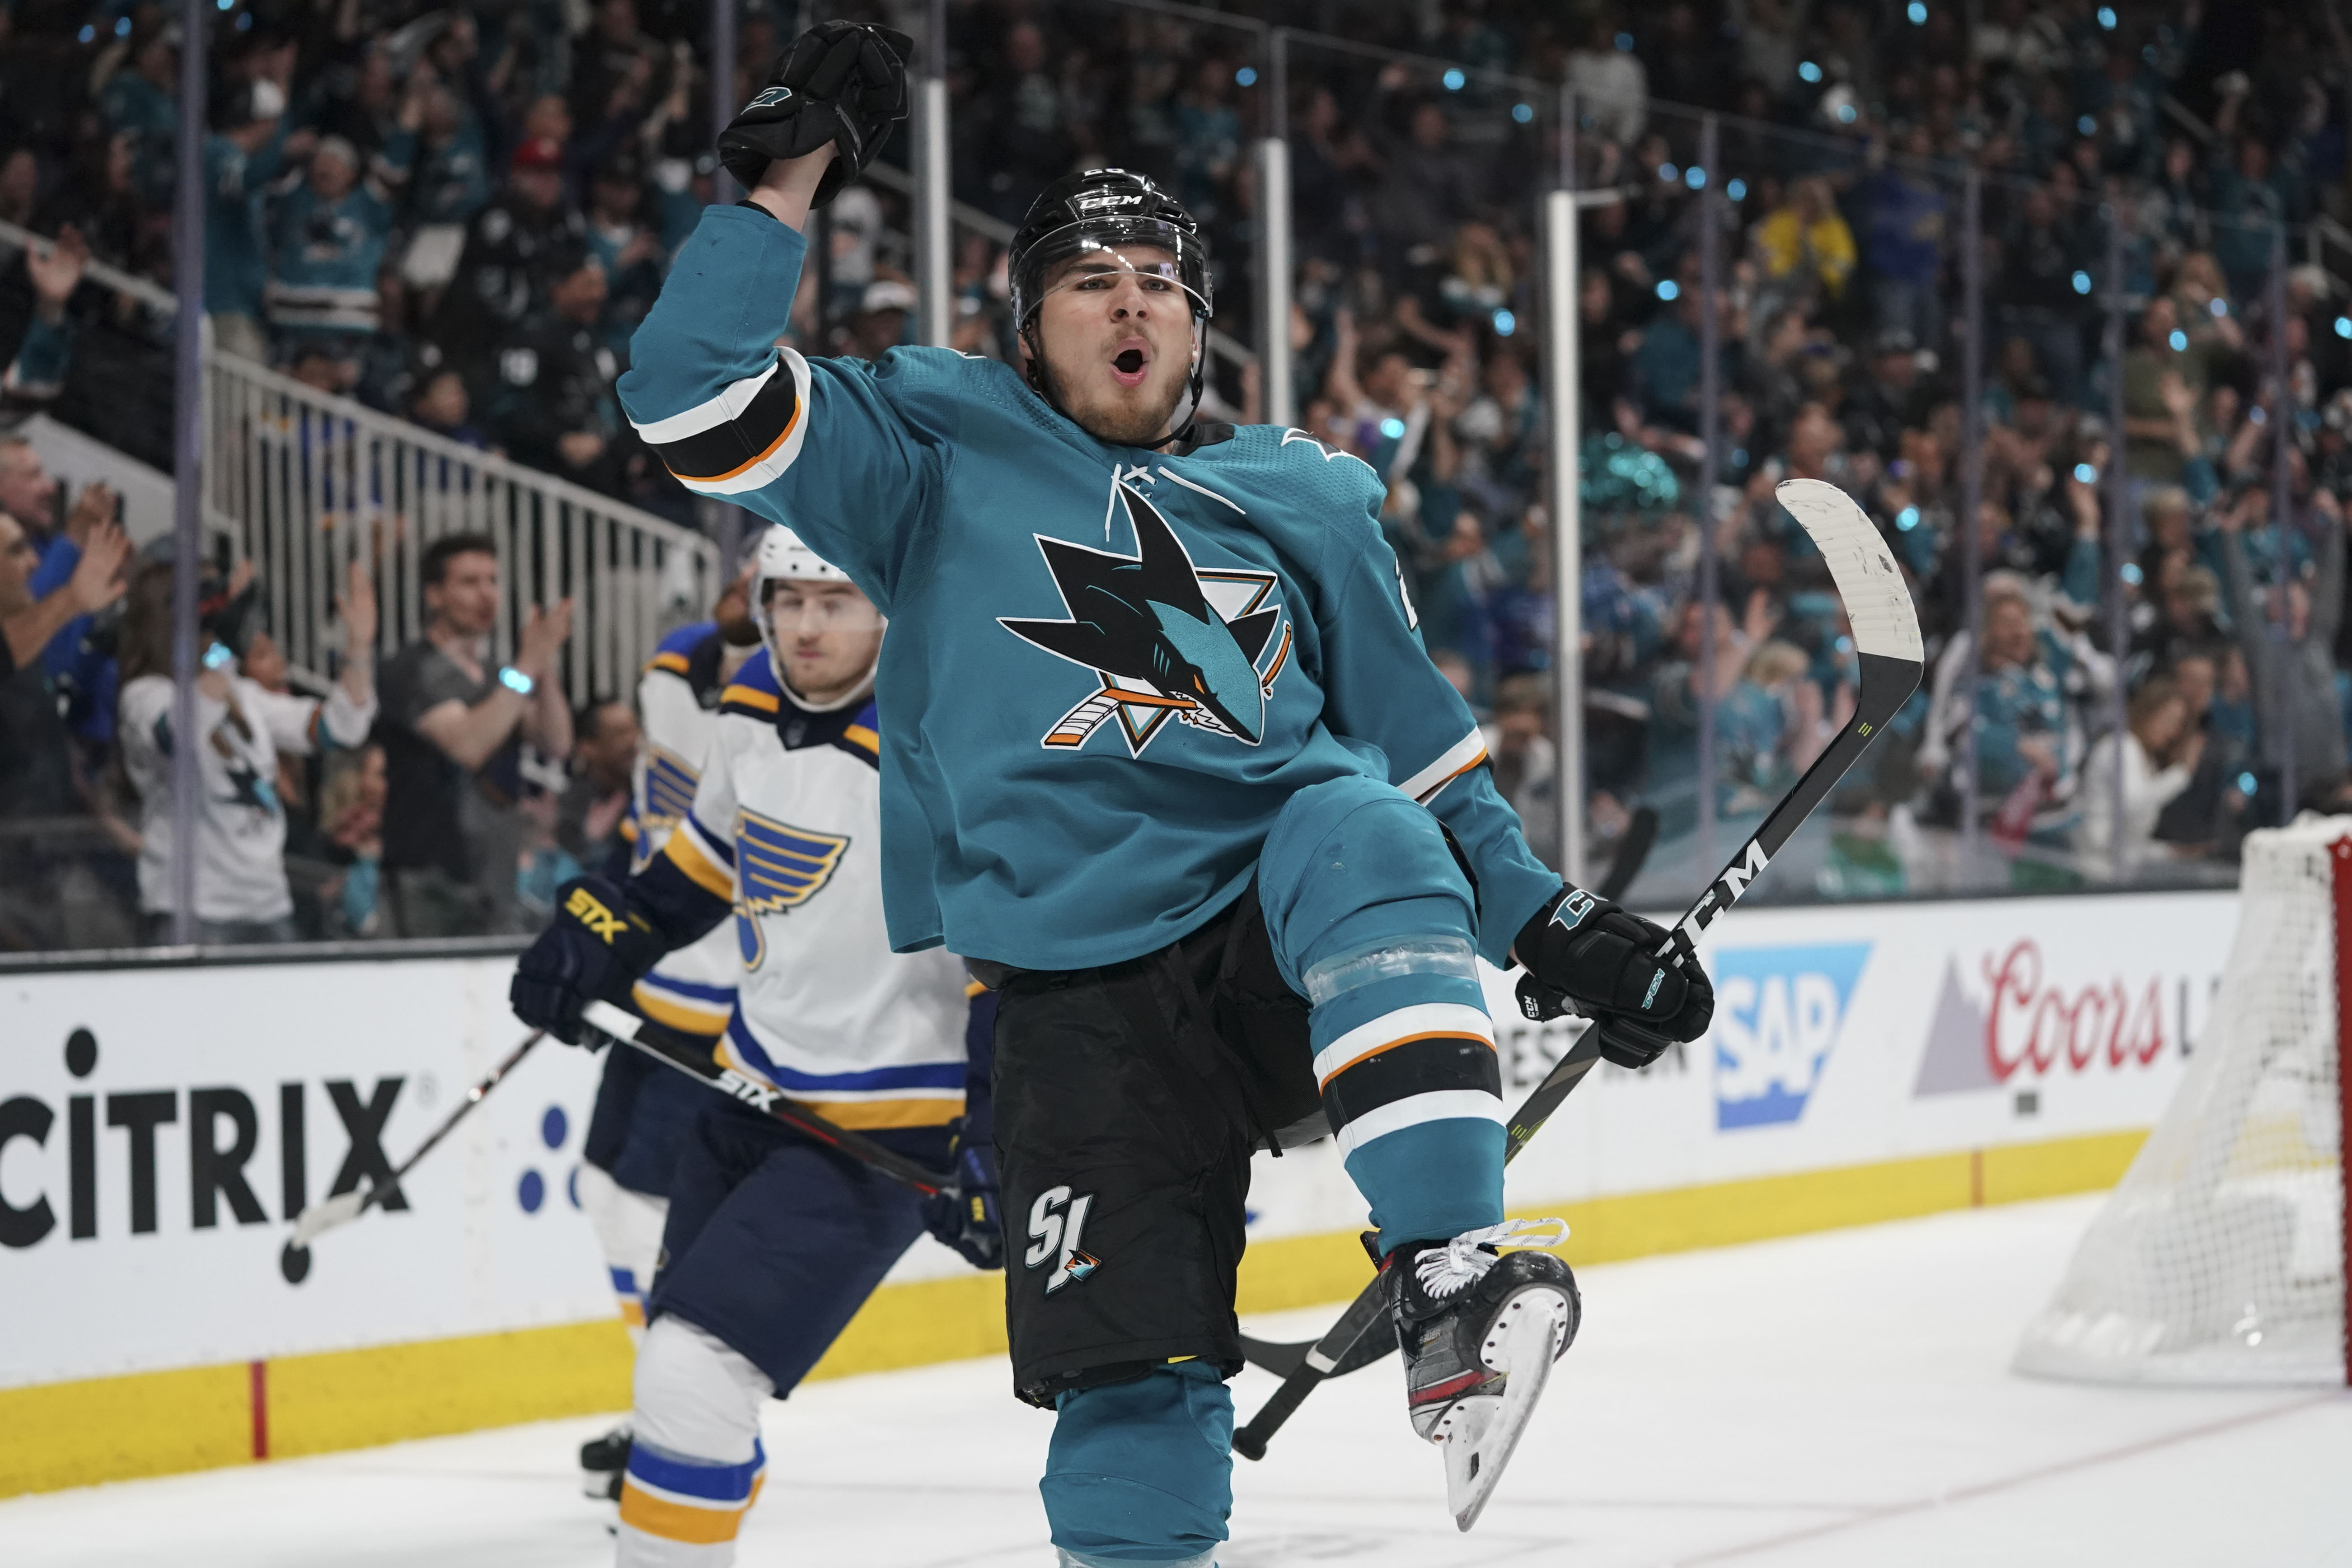 May 11, 2019; San Jose, CA, USA; San Jose Sharks right wing Timo Meier celebrates after scoring a goal against the St. Louis Blues during the second period in Game 1 of the Western Conference Final of the 2019 Stanley Cup Playoffs at SAP Center.